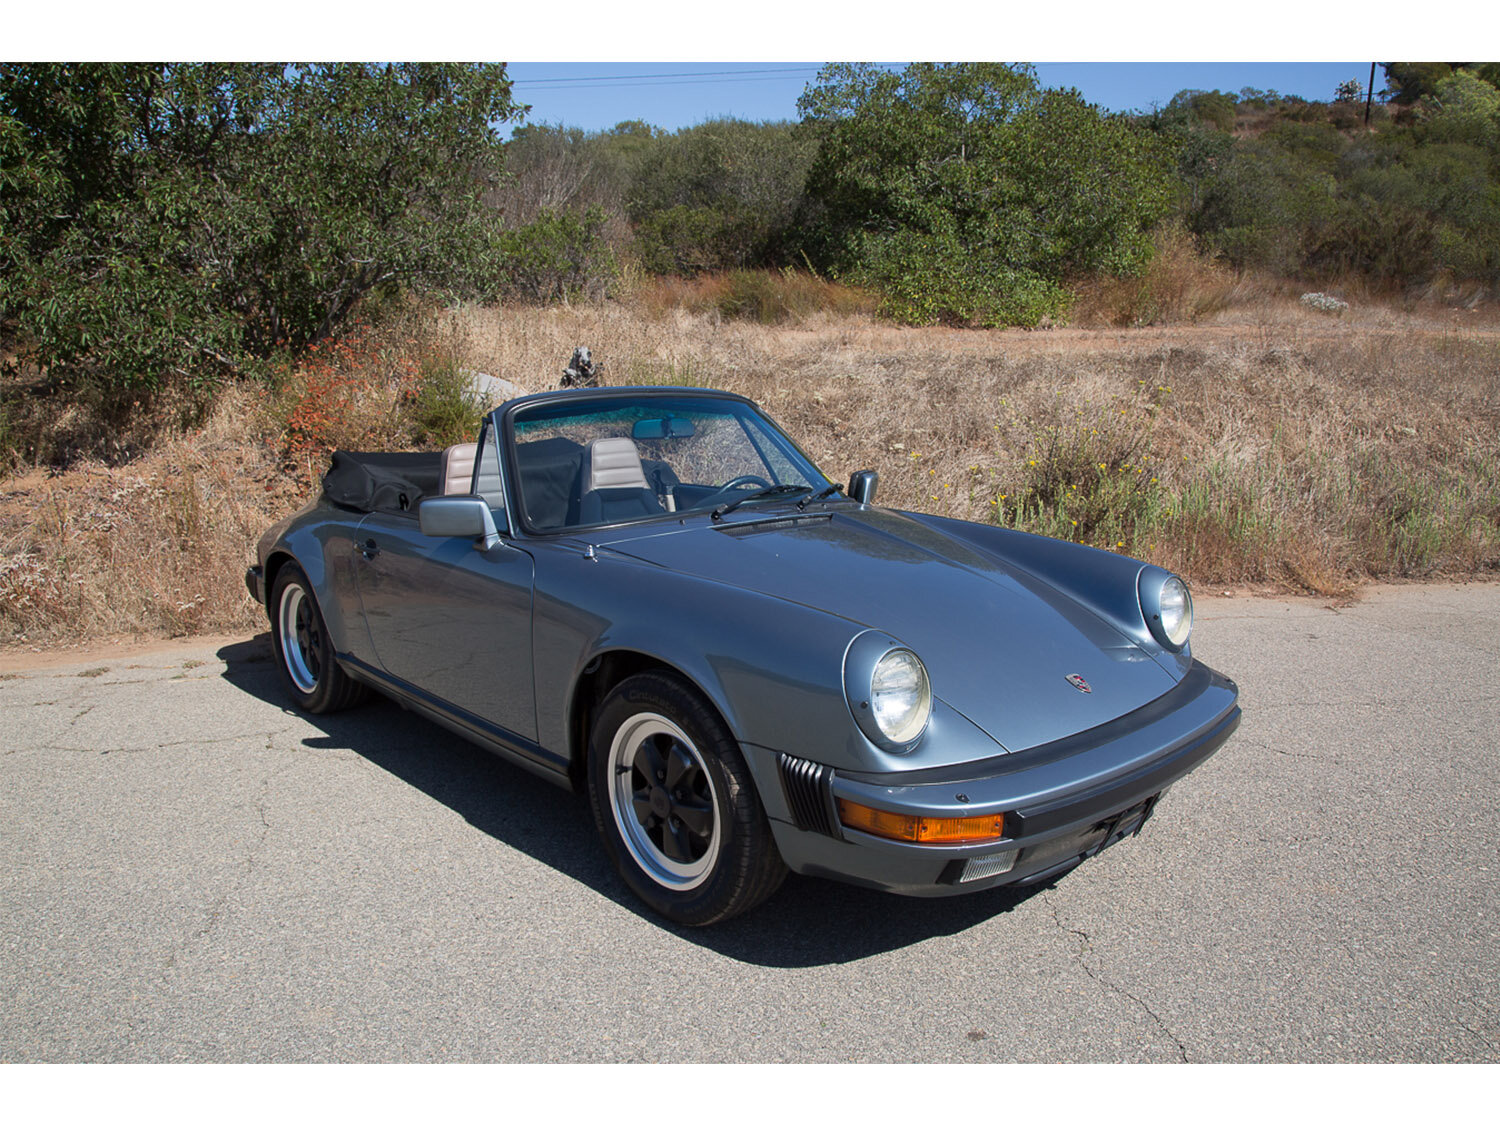 1984-carrera-cabriolet-slate-blue-911-sc-for-sale-makellos-classics_0001s_0000s_0032_1B7A6597.jpg